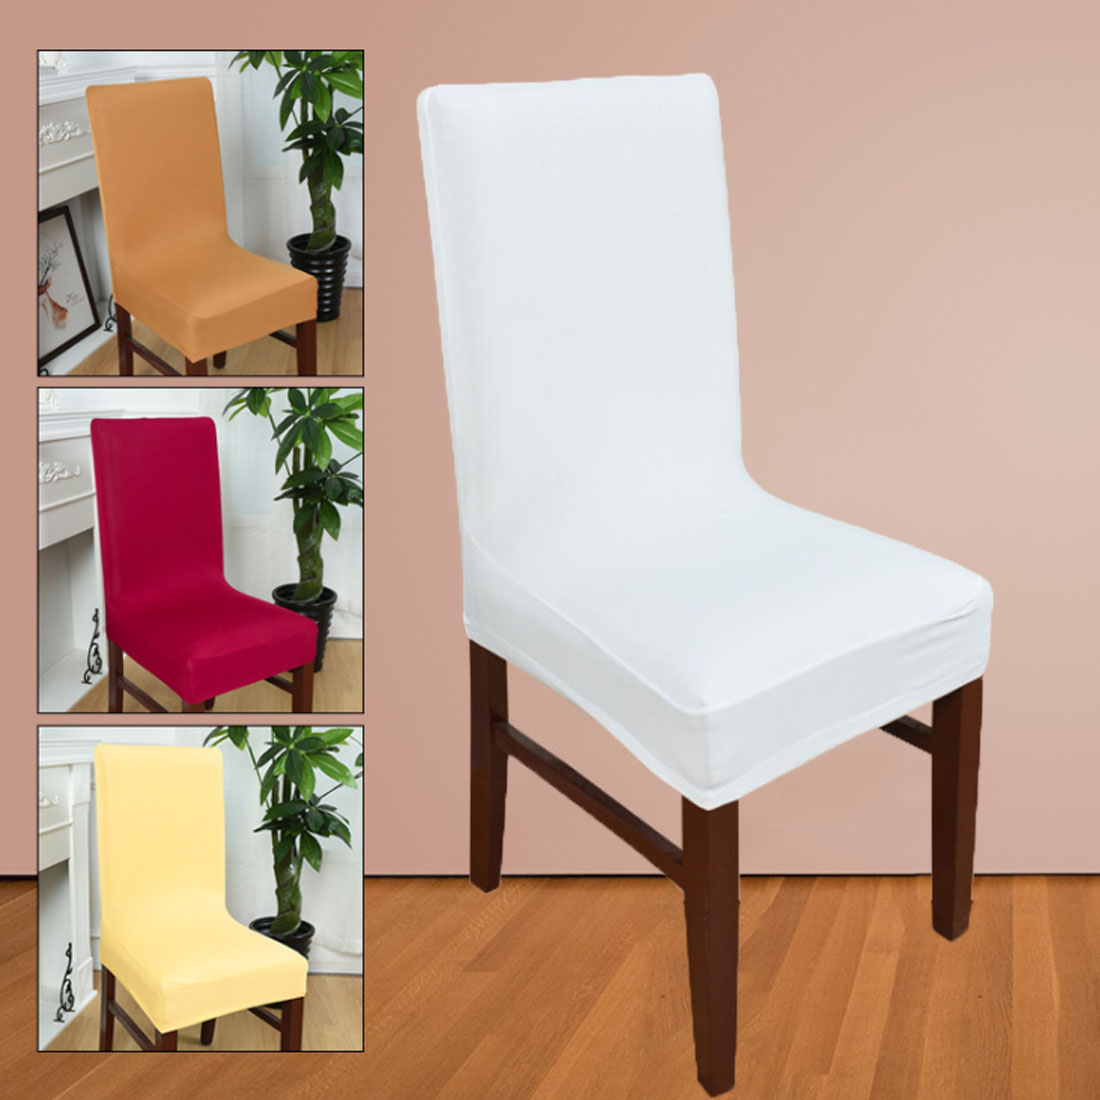 Sillas Comedor Spandex Strech Dining Room Chair Covers Protector Slipcover Decor Cadeiras Seat Covers For Computer Chairs